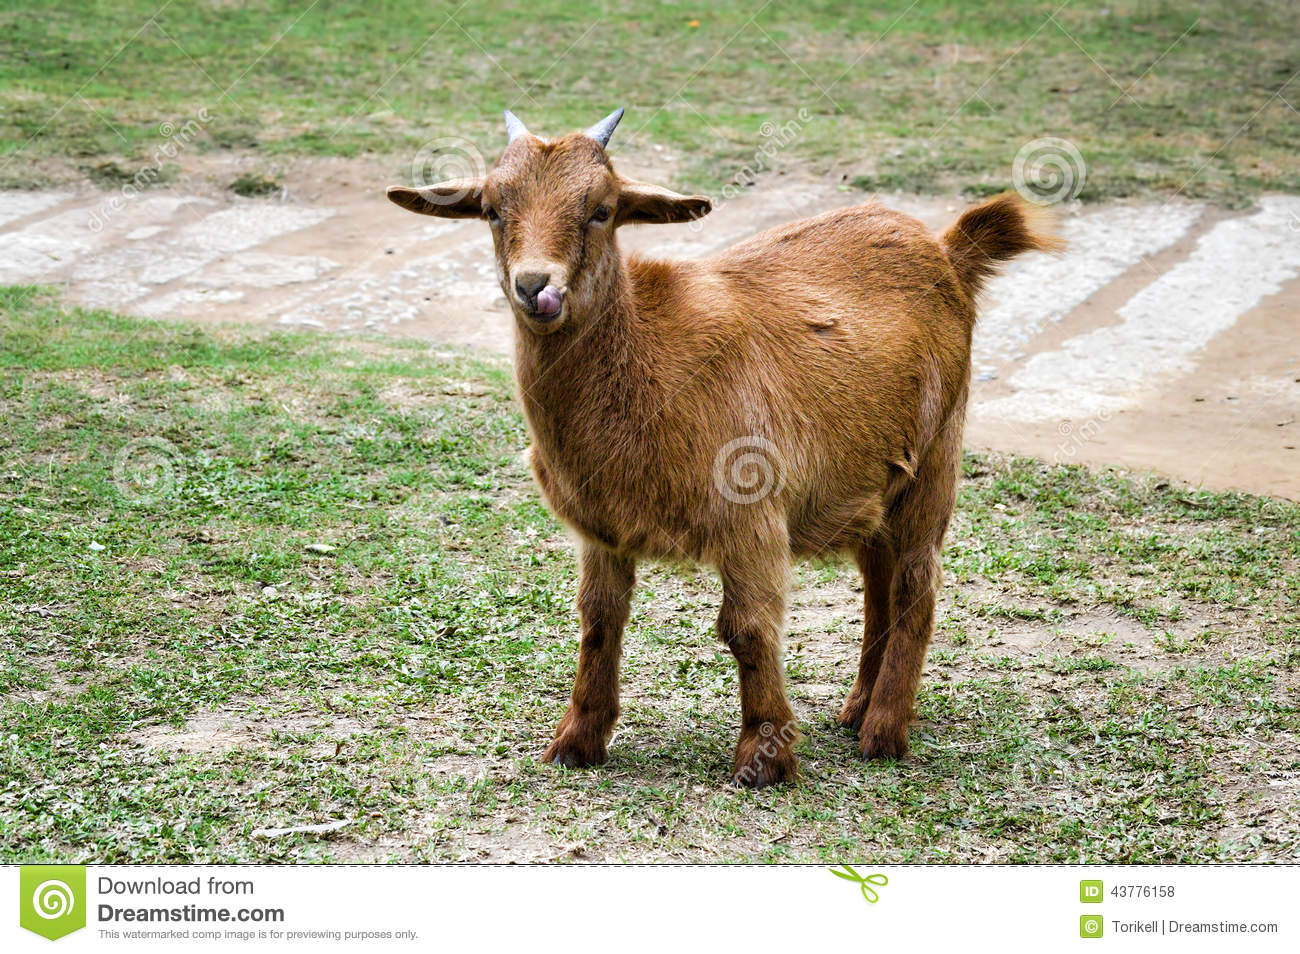 An Orange Goat Licks its Nose, Full Body View